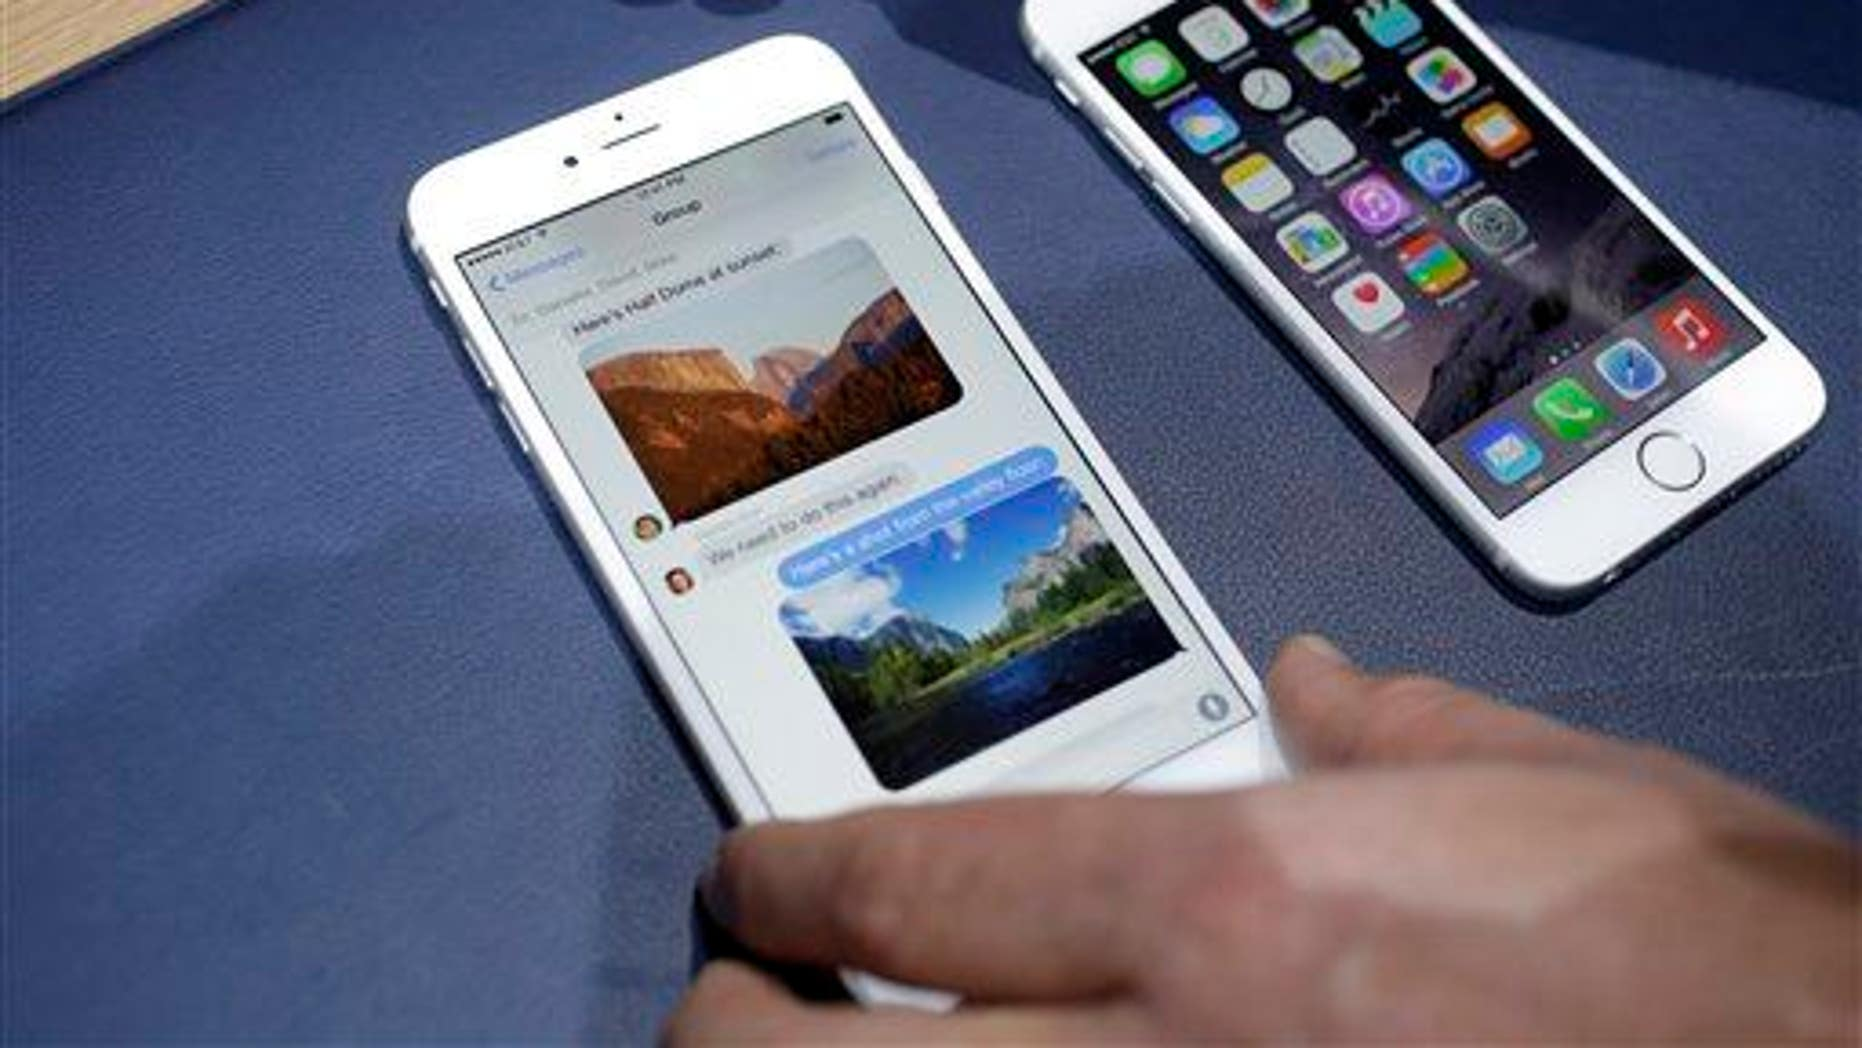 The iPhone 6 plus, left, and iPhone 6 are displayed on Tuesday, Sept. 9, 2014, in Cupertino, Calif.